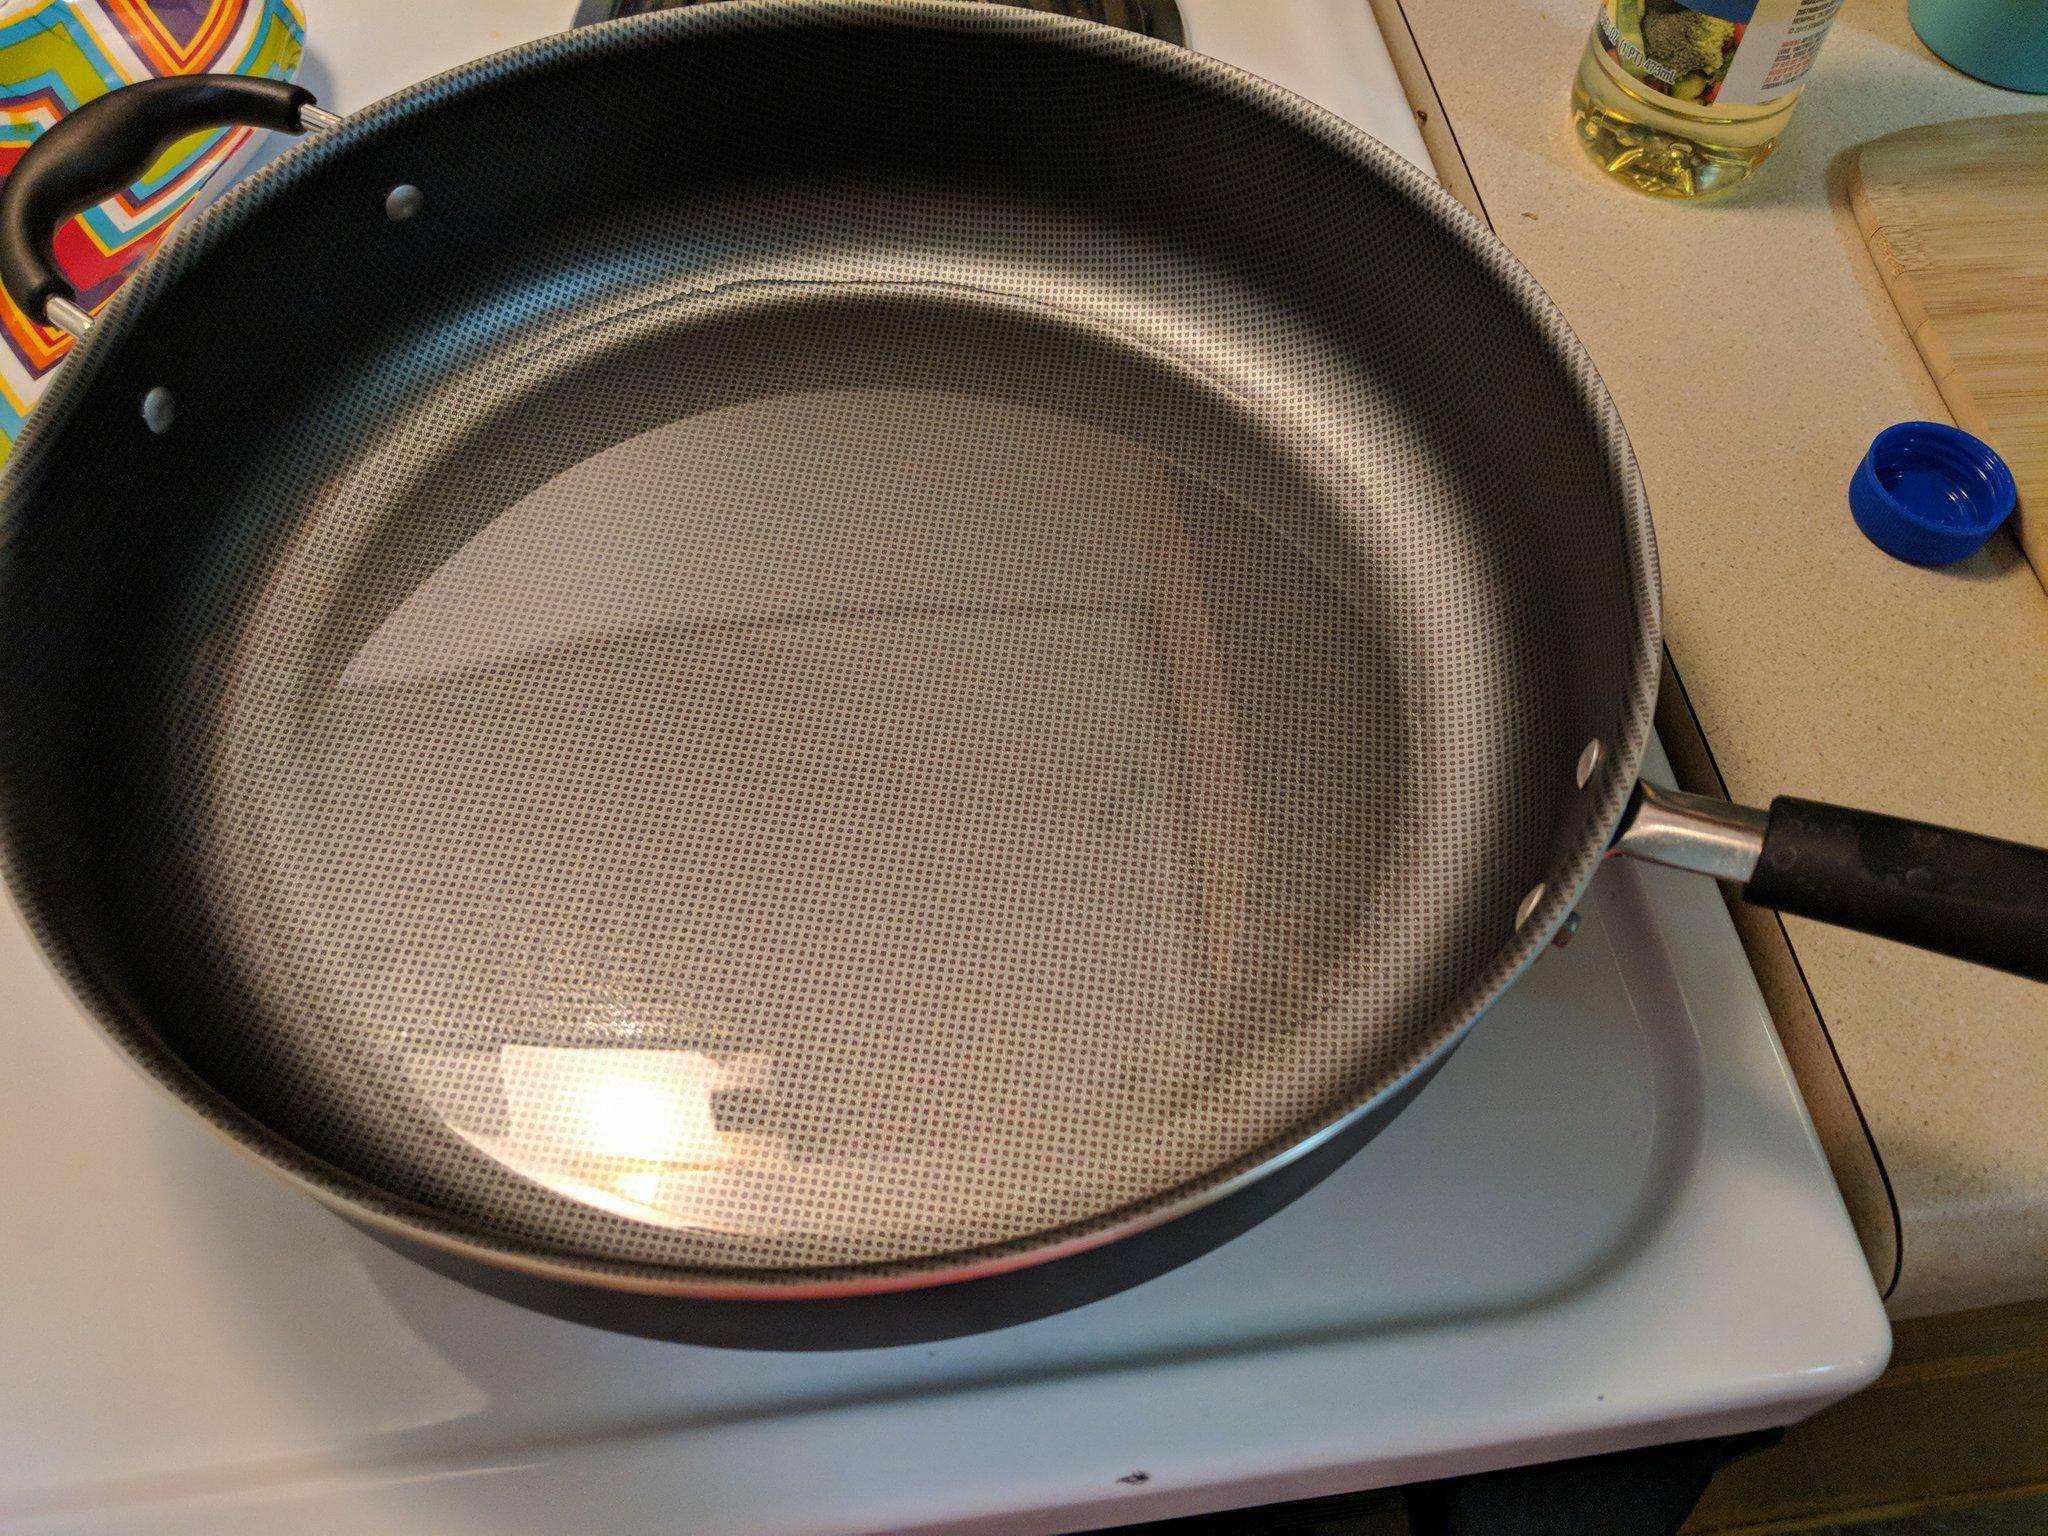 Picture of Heat Frying Pan